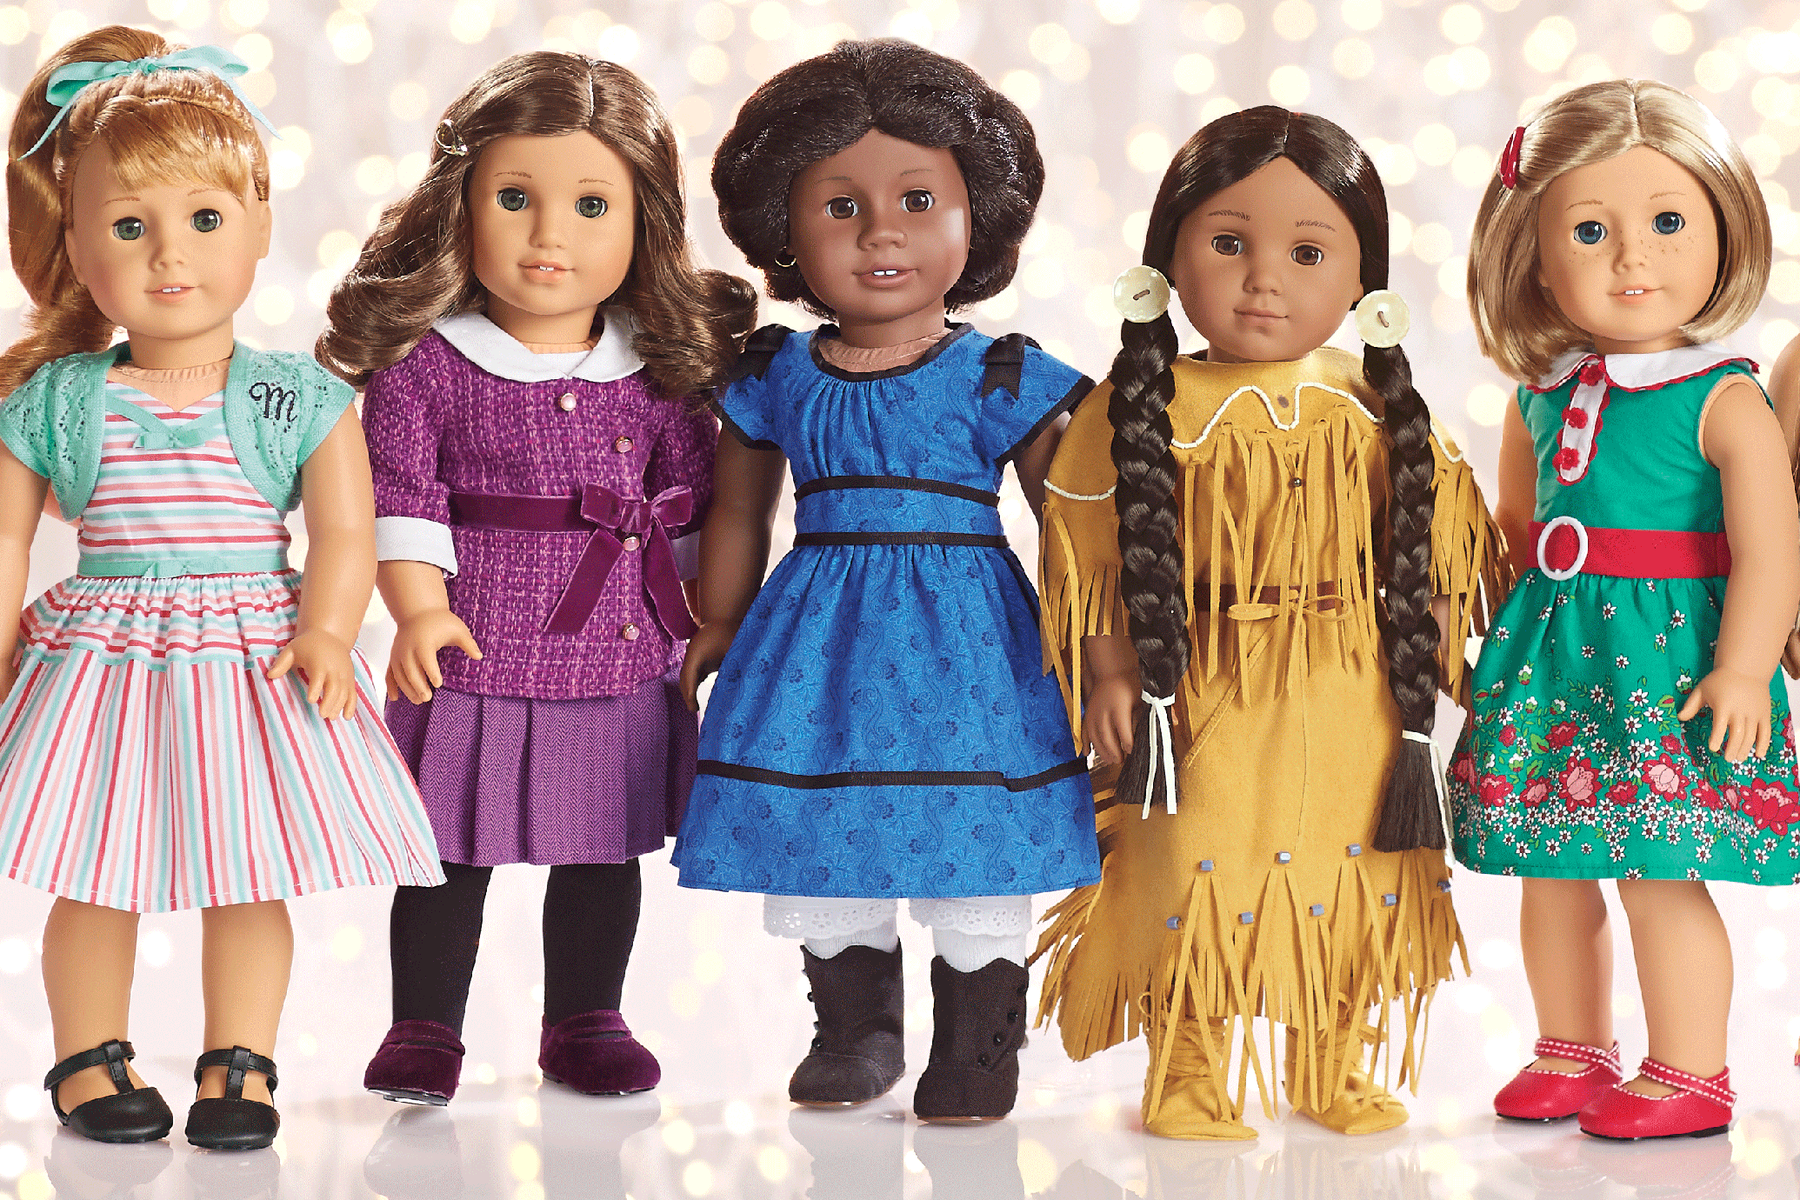 160102-news-american-girl-dolls